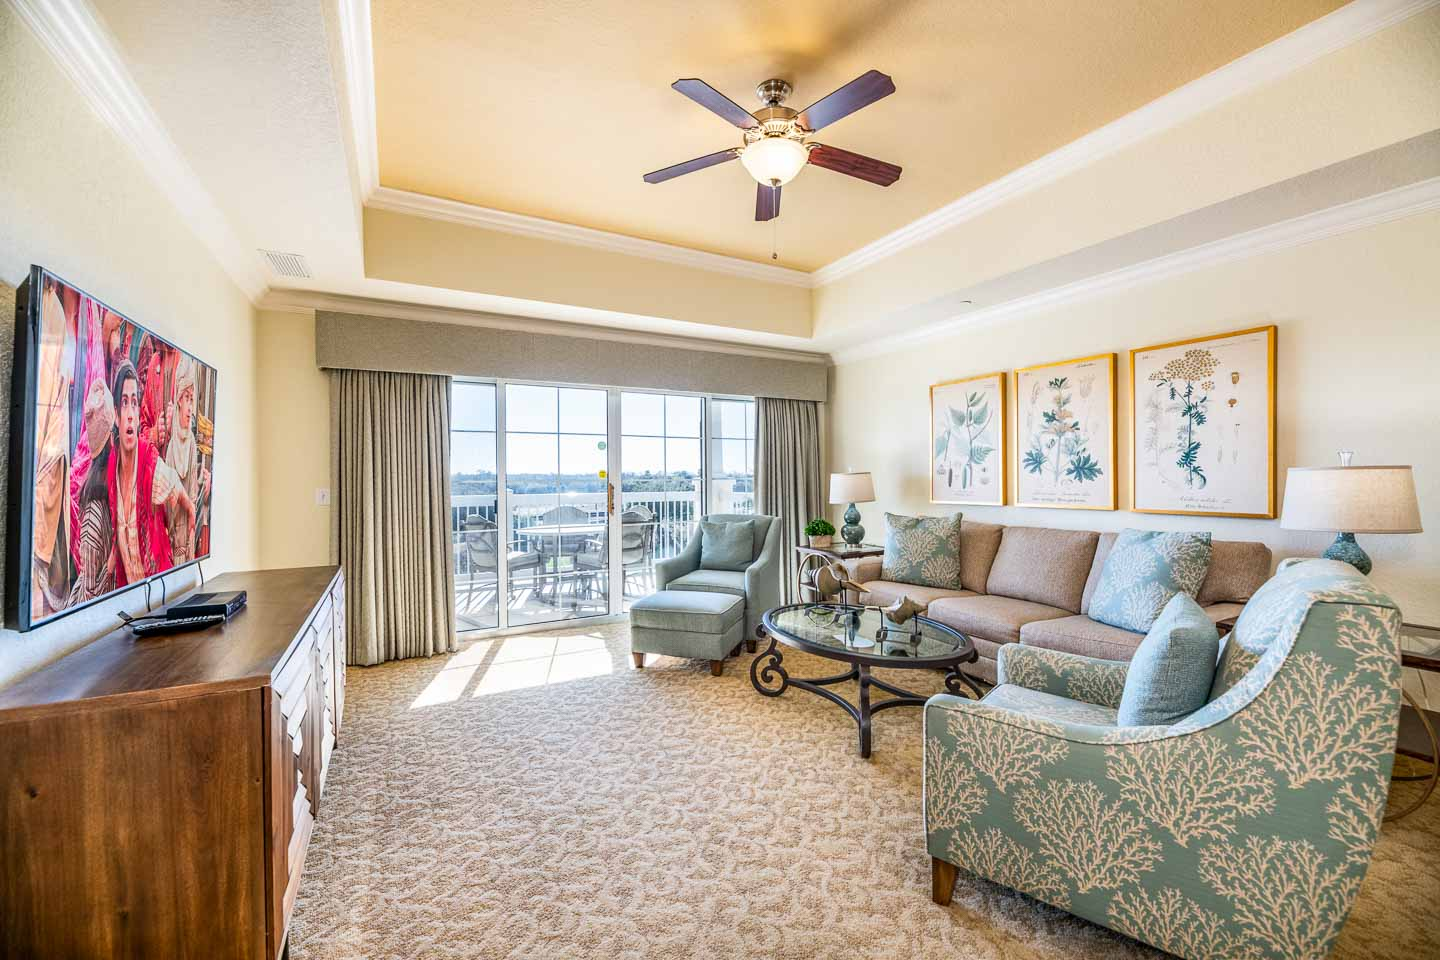 The Welcoming Golf Condo-195346